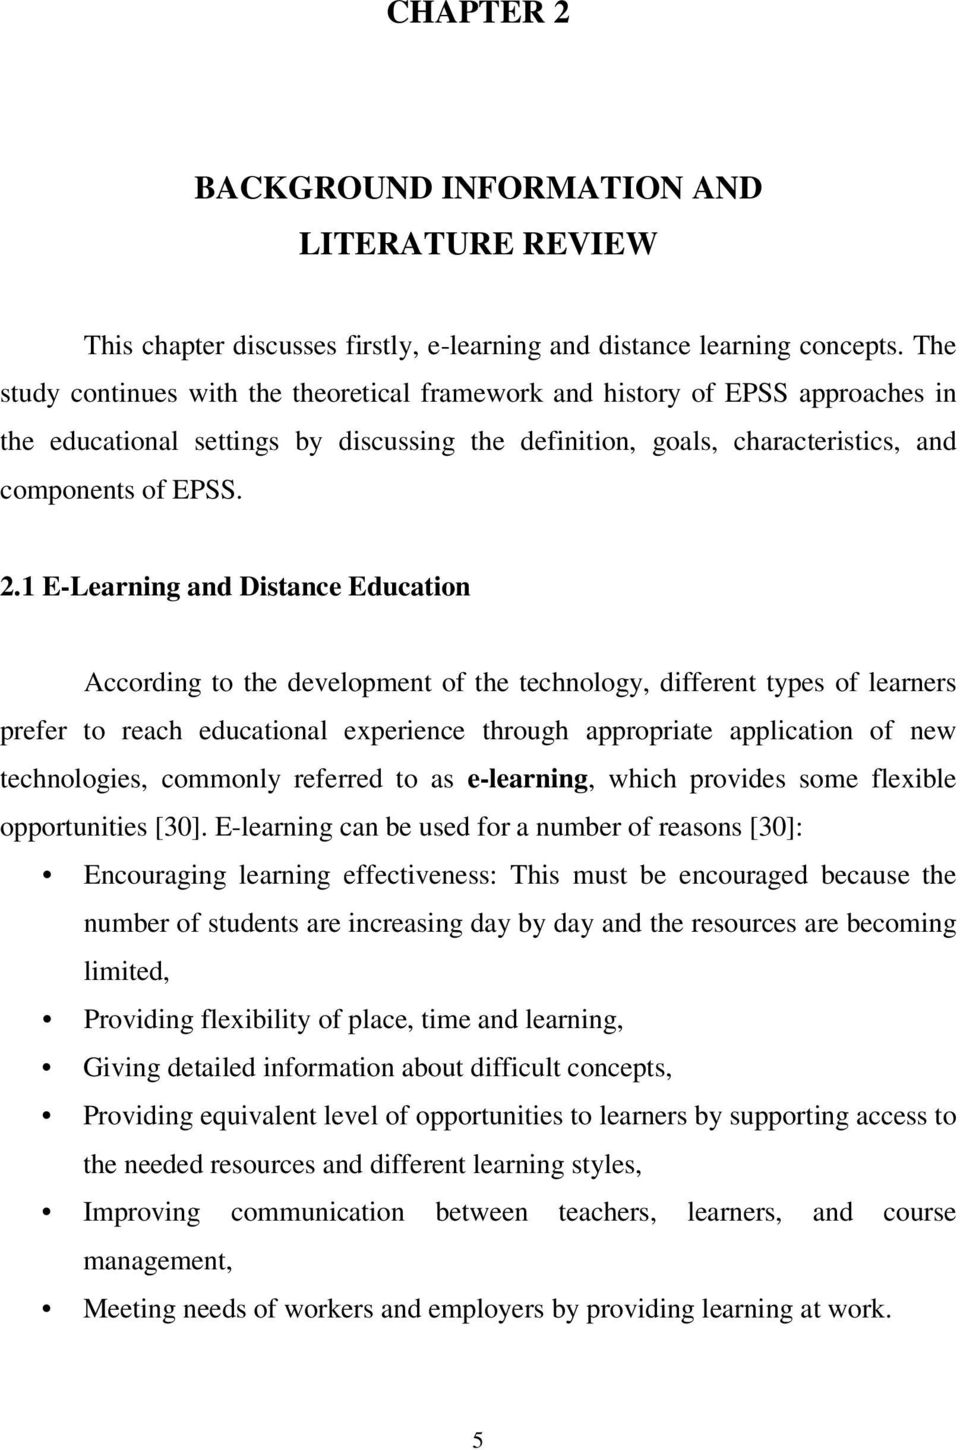 1 E-Learning and Distance Education According to the development of the technology, different types of learners prefer to reach educational experience through appropriate application of new